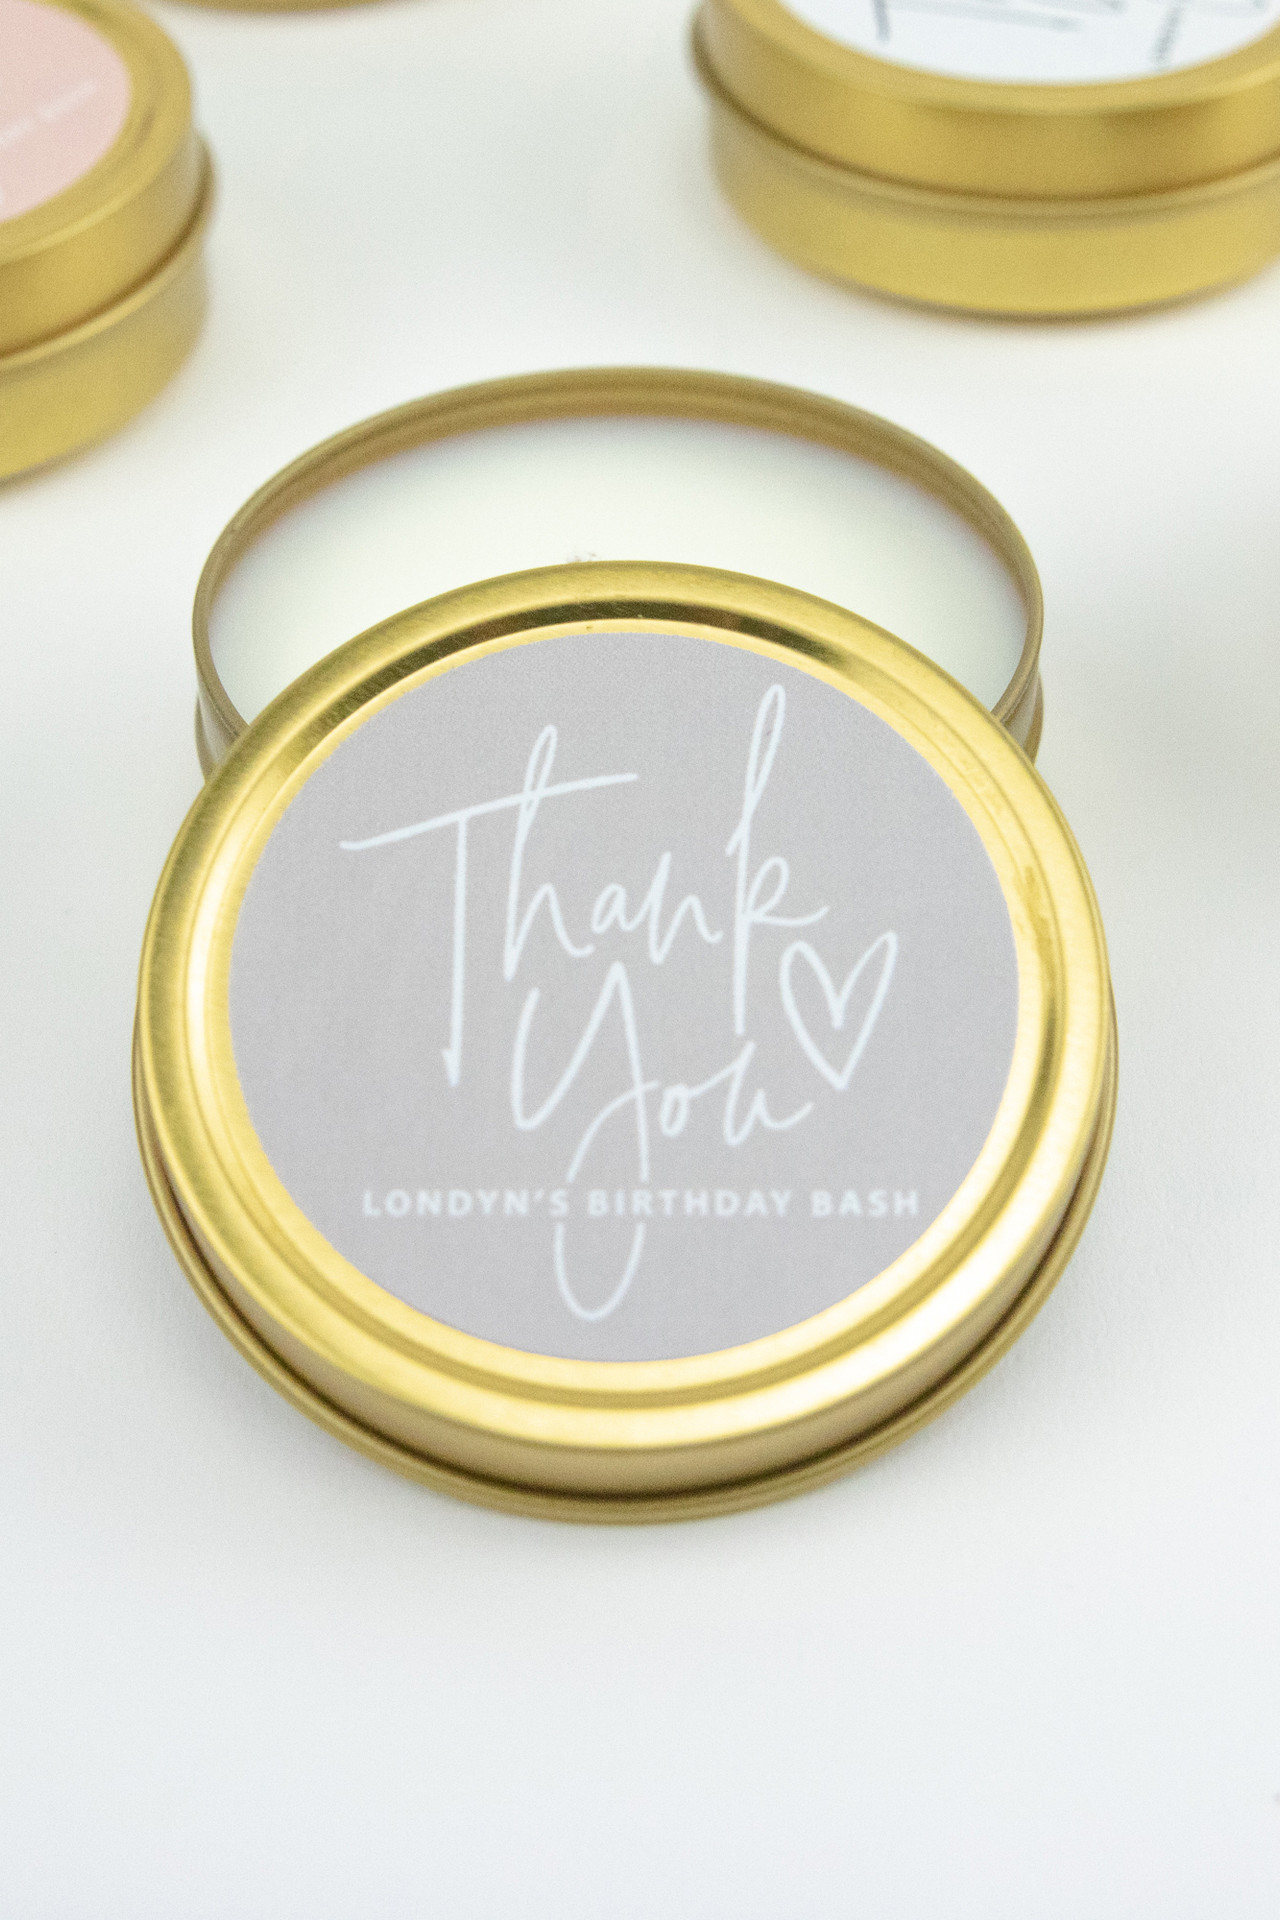 Set of 6 Travel Candles - Thank You